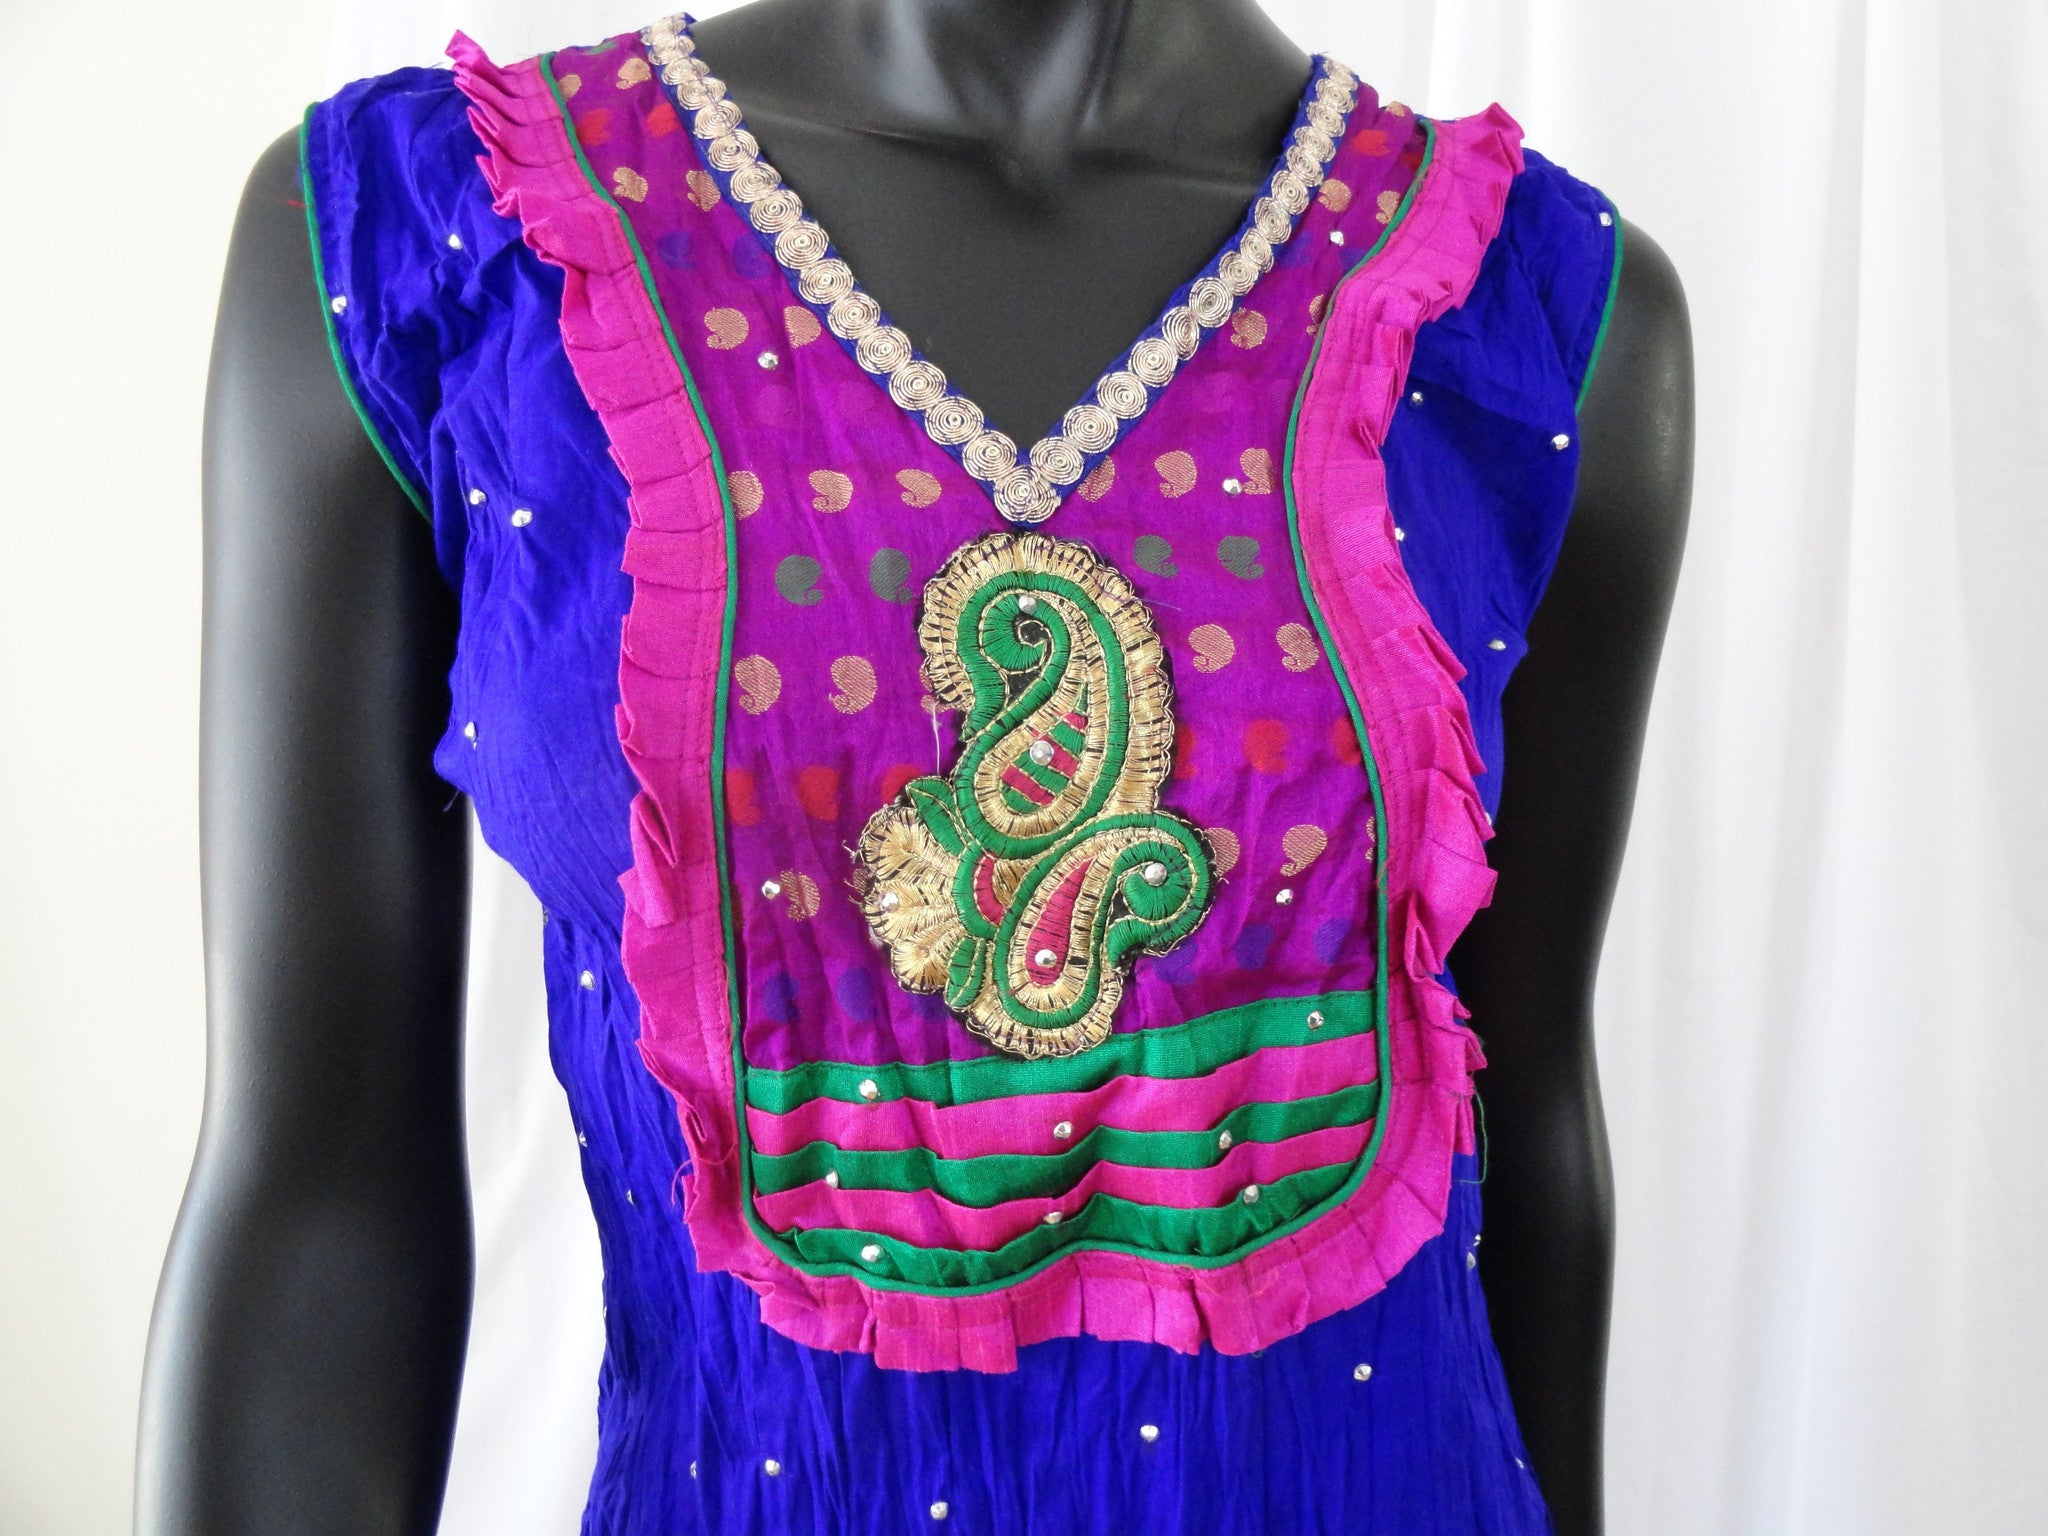 dc8607133f Crushed cotton ethnic sleeveless dress or top- blue. Soft Cotton dress top  with striking embroidered appliqué in pink . Summer boho casual blouse or  ...